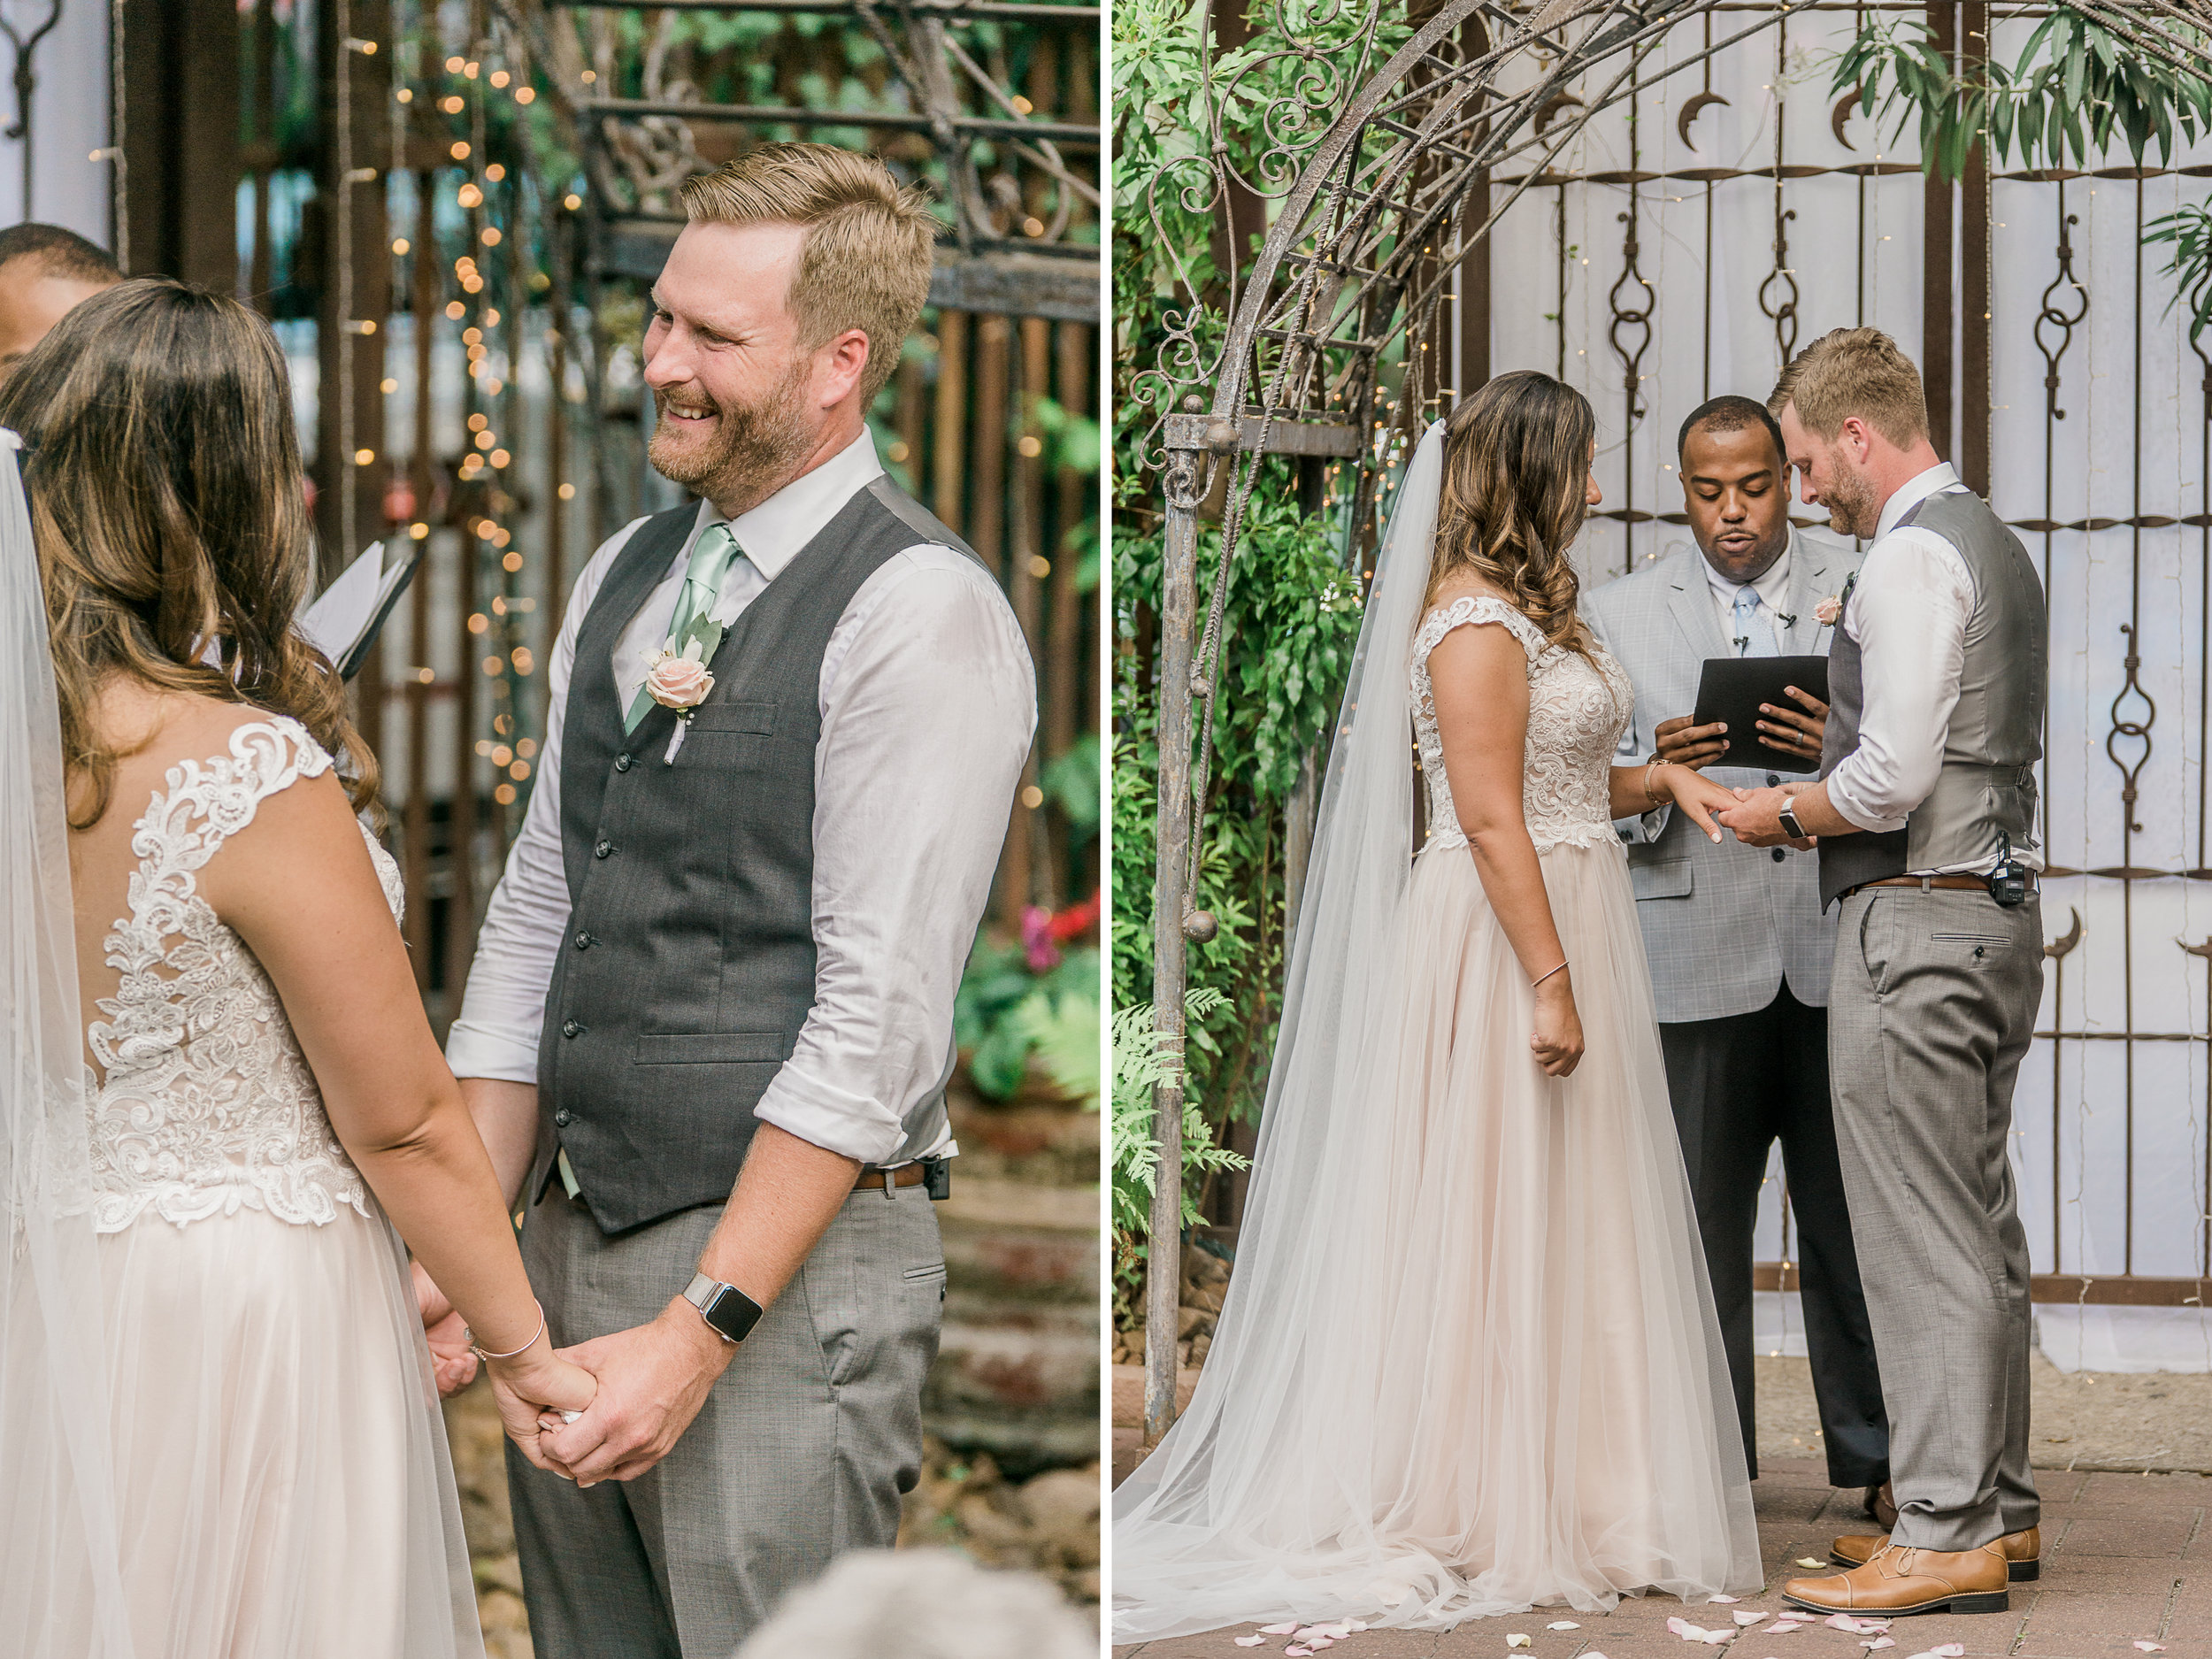 SmithWedding_HoustonTexasWeddingPhotographer_LightandAiry_FilmPhotographer_AvantGarden_HoustonHeightsWedding15.jpg